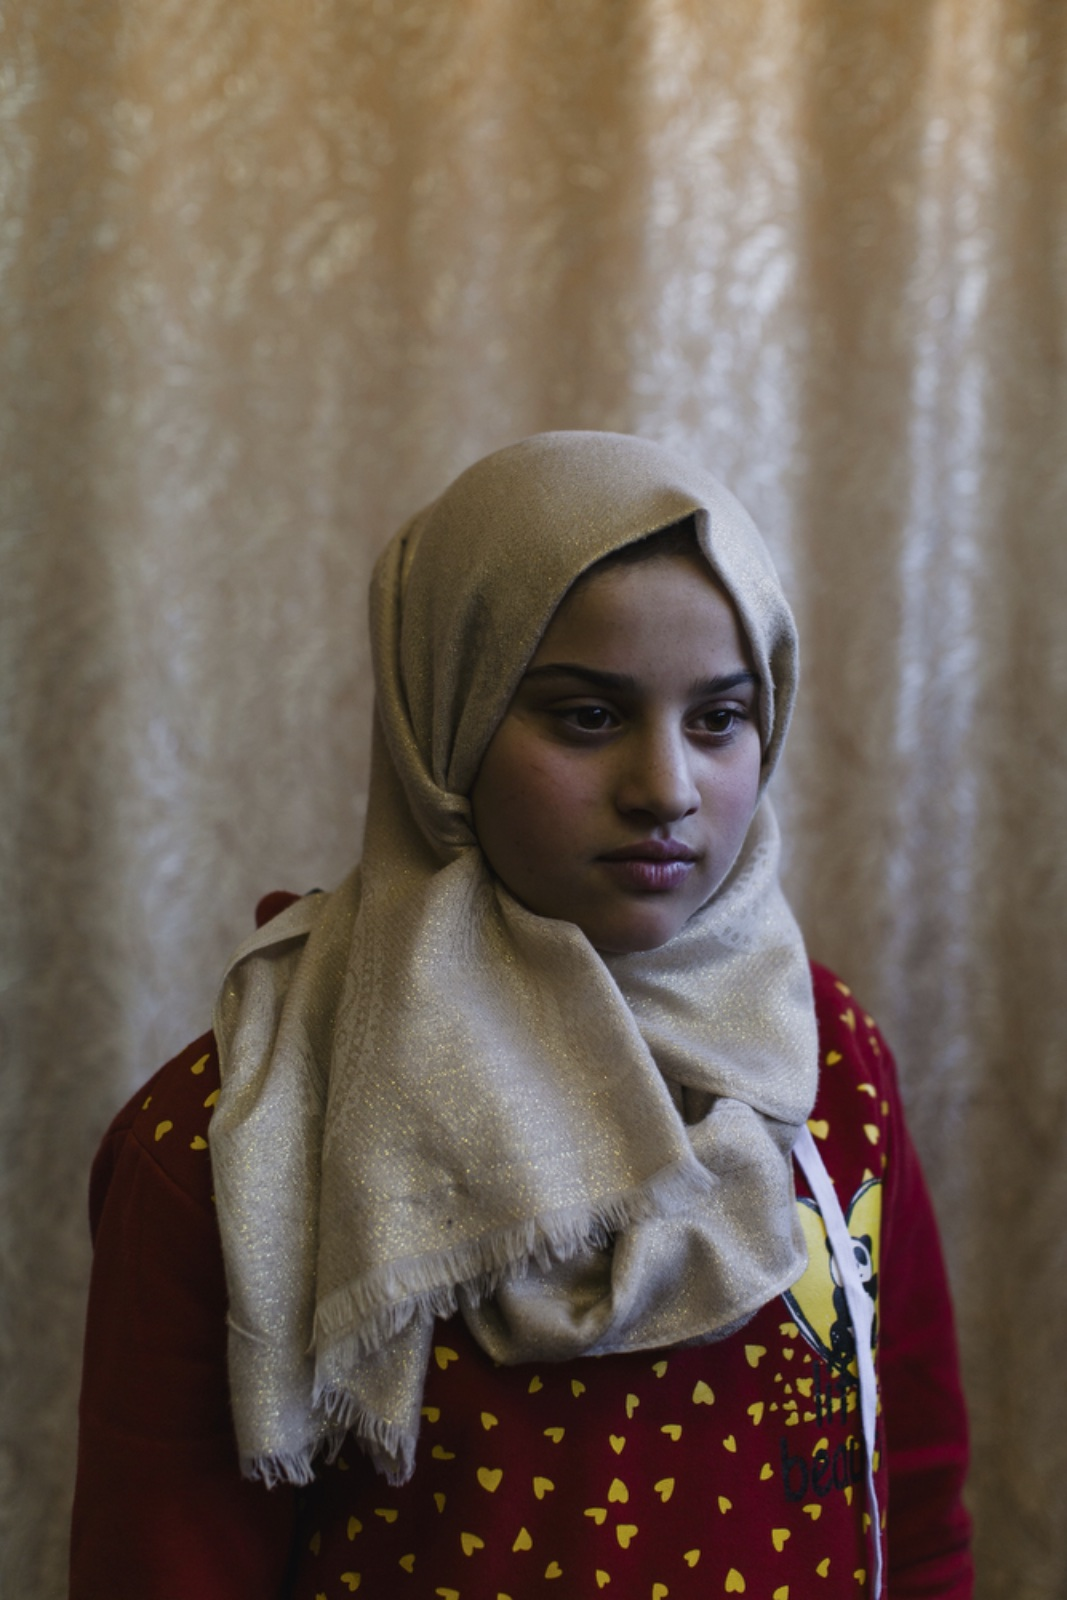 Asmaa Ayob, 13, a Syrian refugee from Daraa has been living in Amman, Jordan, for four years, poses for a portrait in the community center of Dar Al-Ihsan For Orphans, an organization that provides aid to orphaned children. Her father was killed during shelling in Syria. (Christopher Lee/GroundTruth)